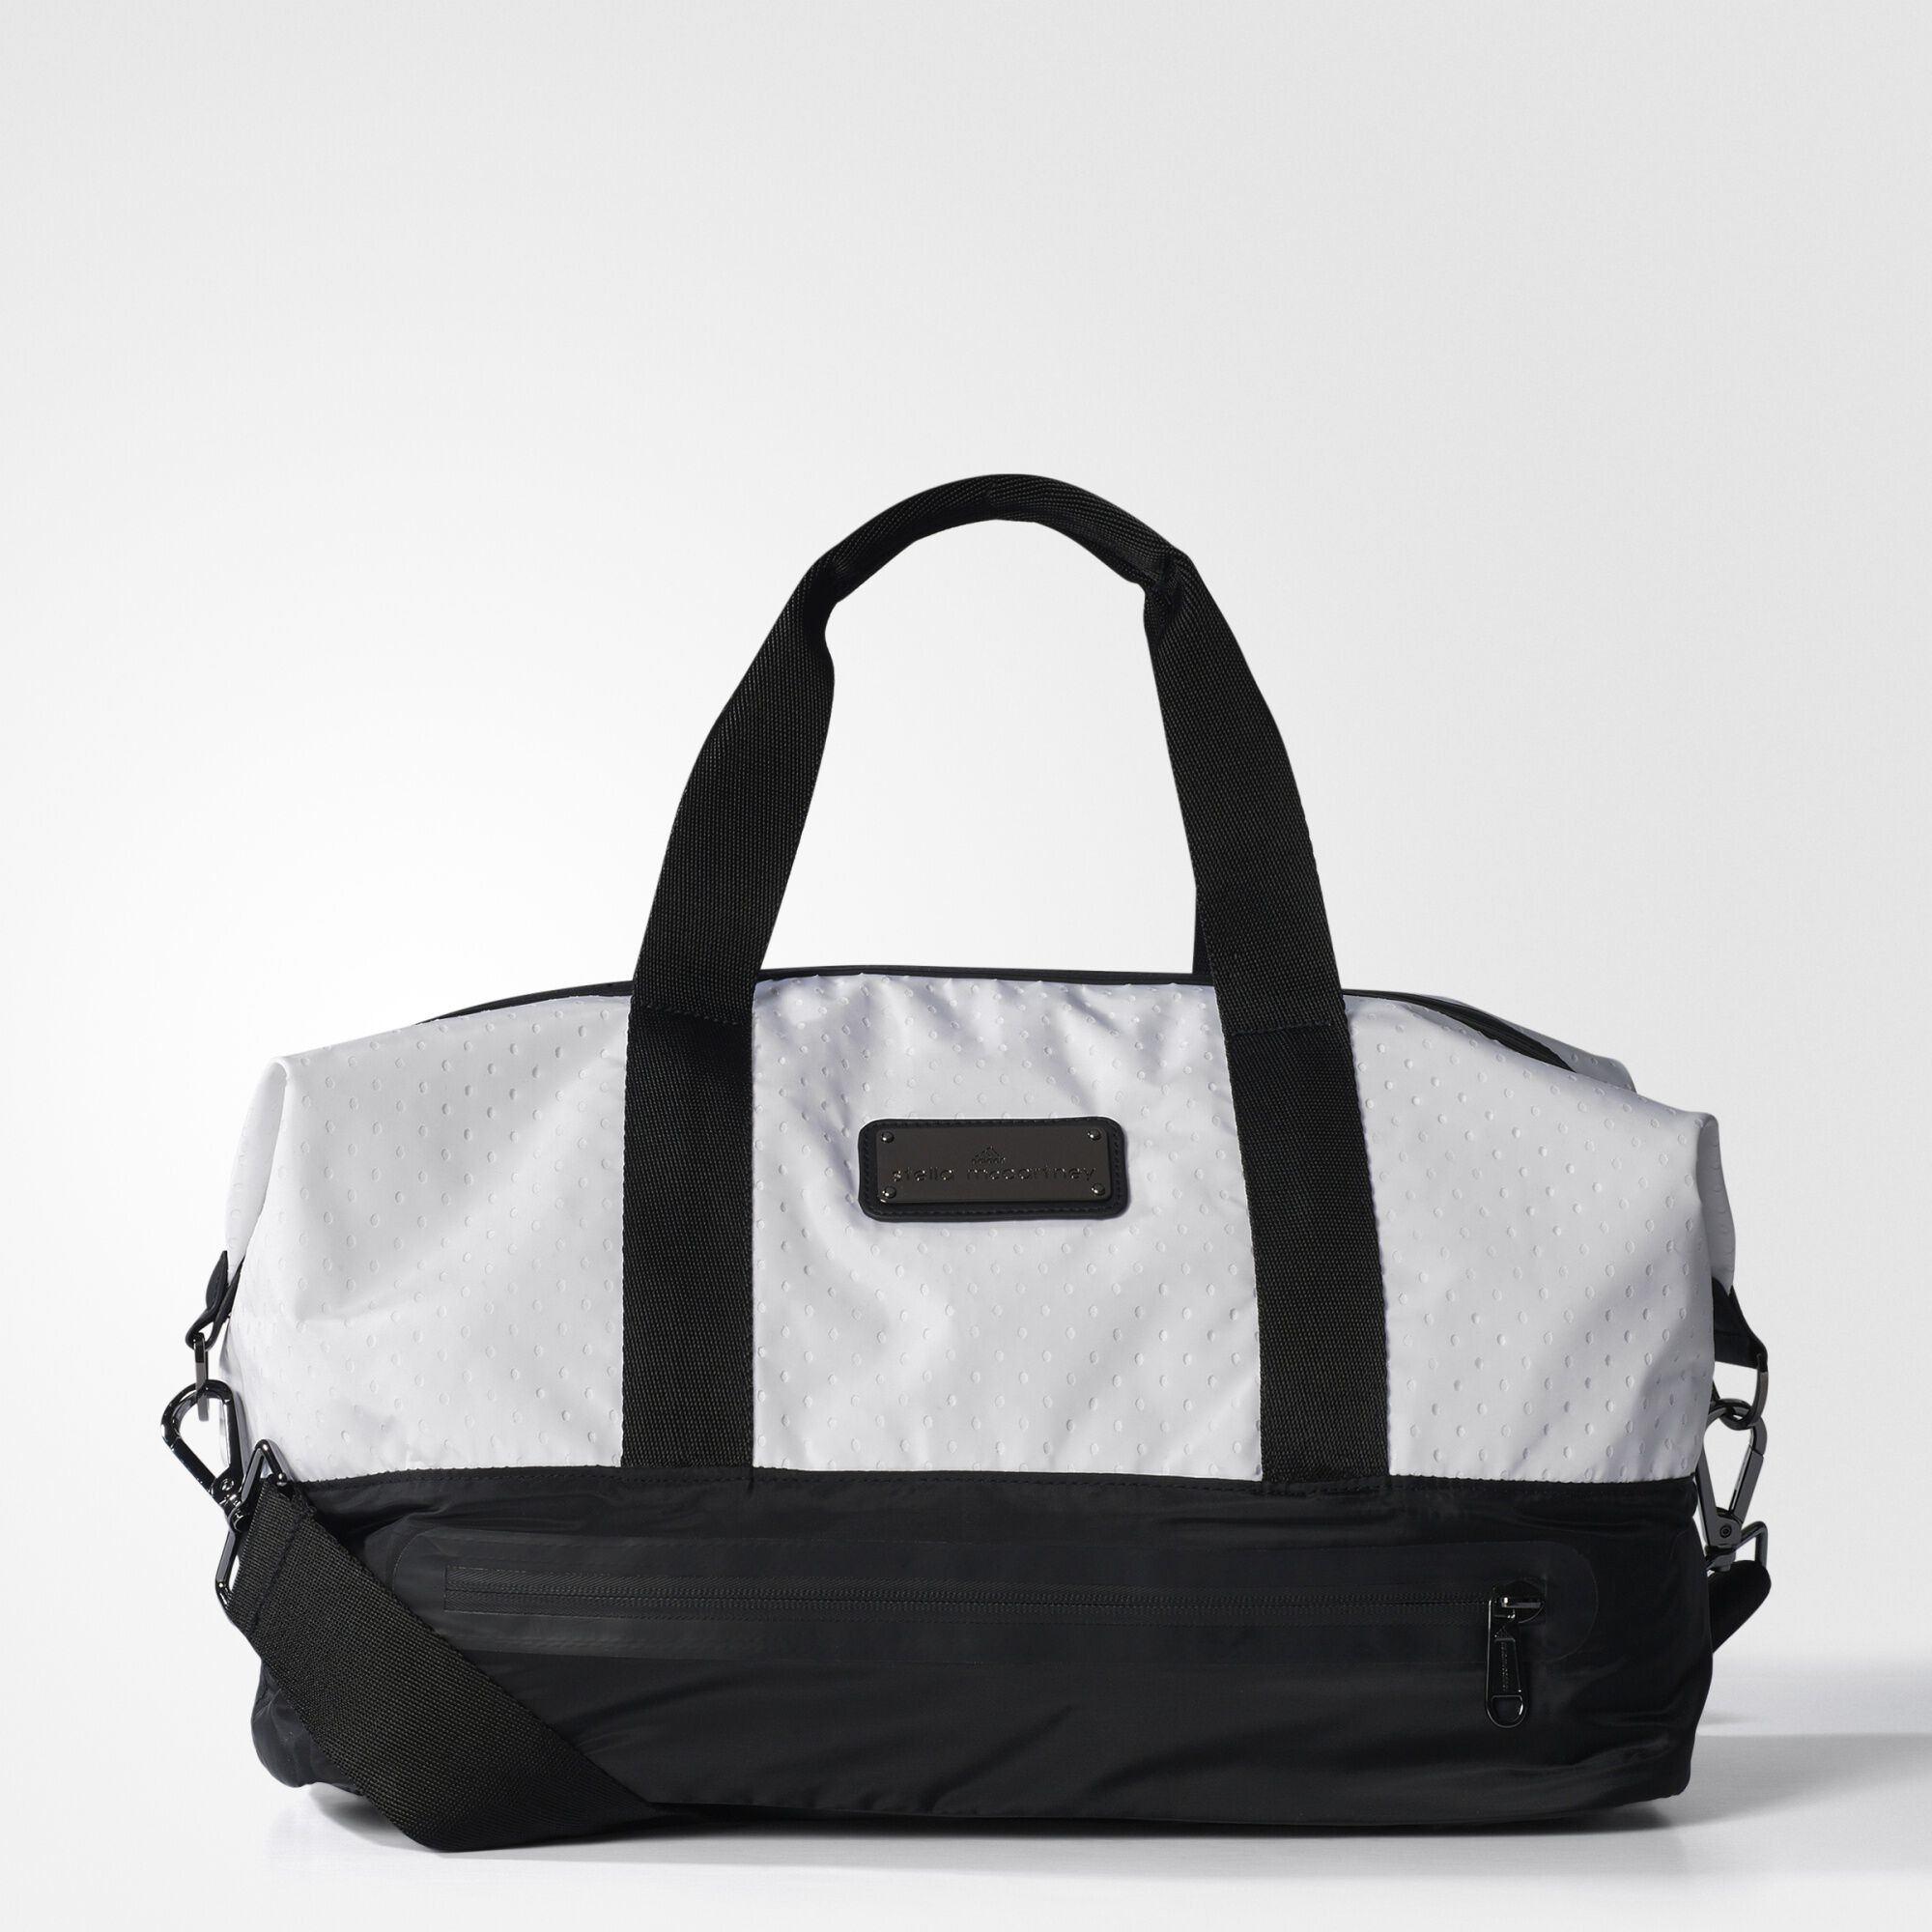 Adidas Gym Bag With Shoe Compartment